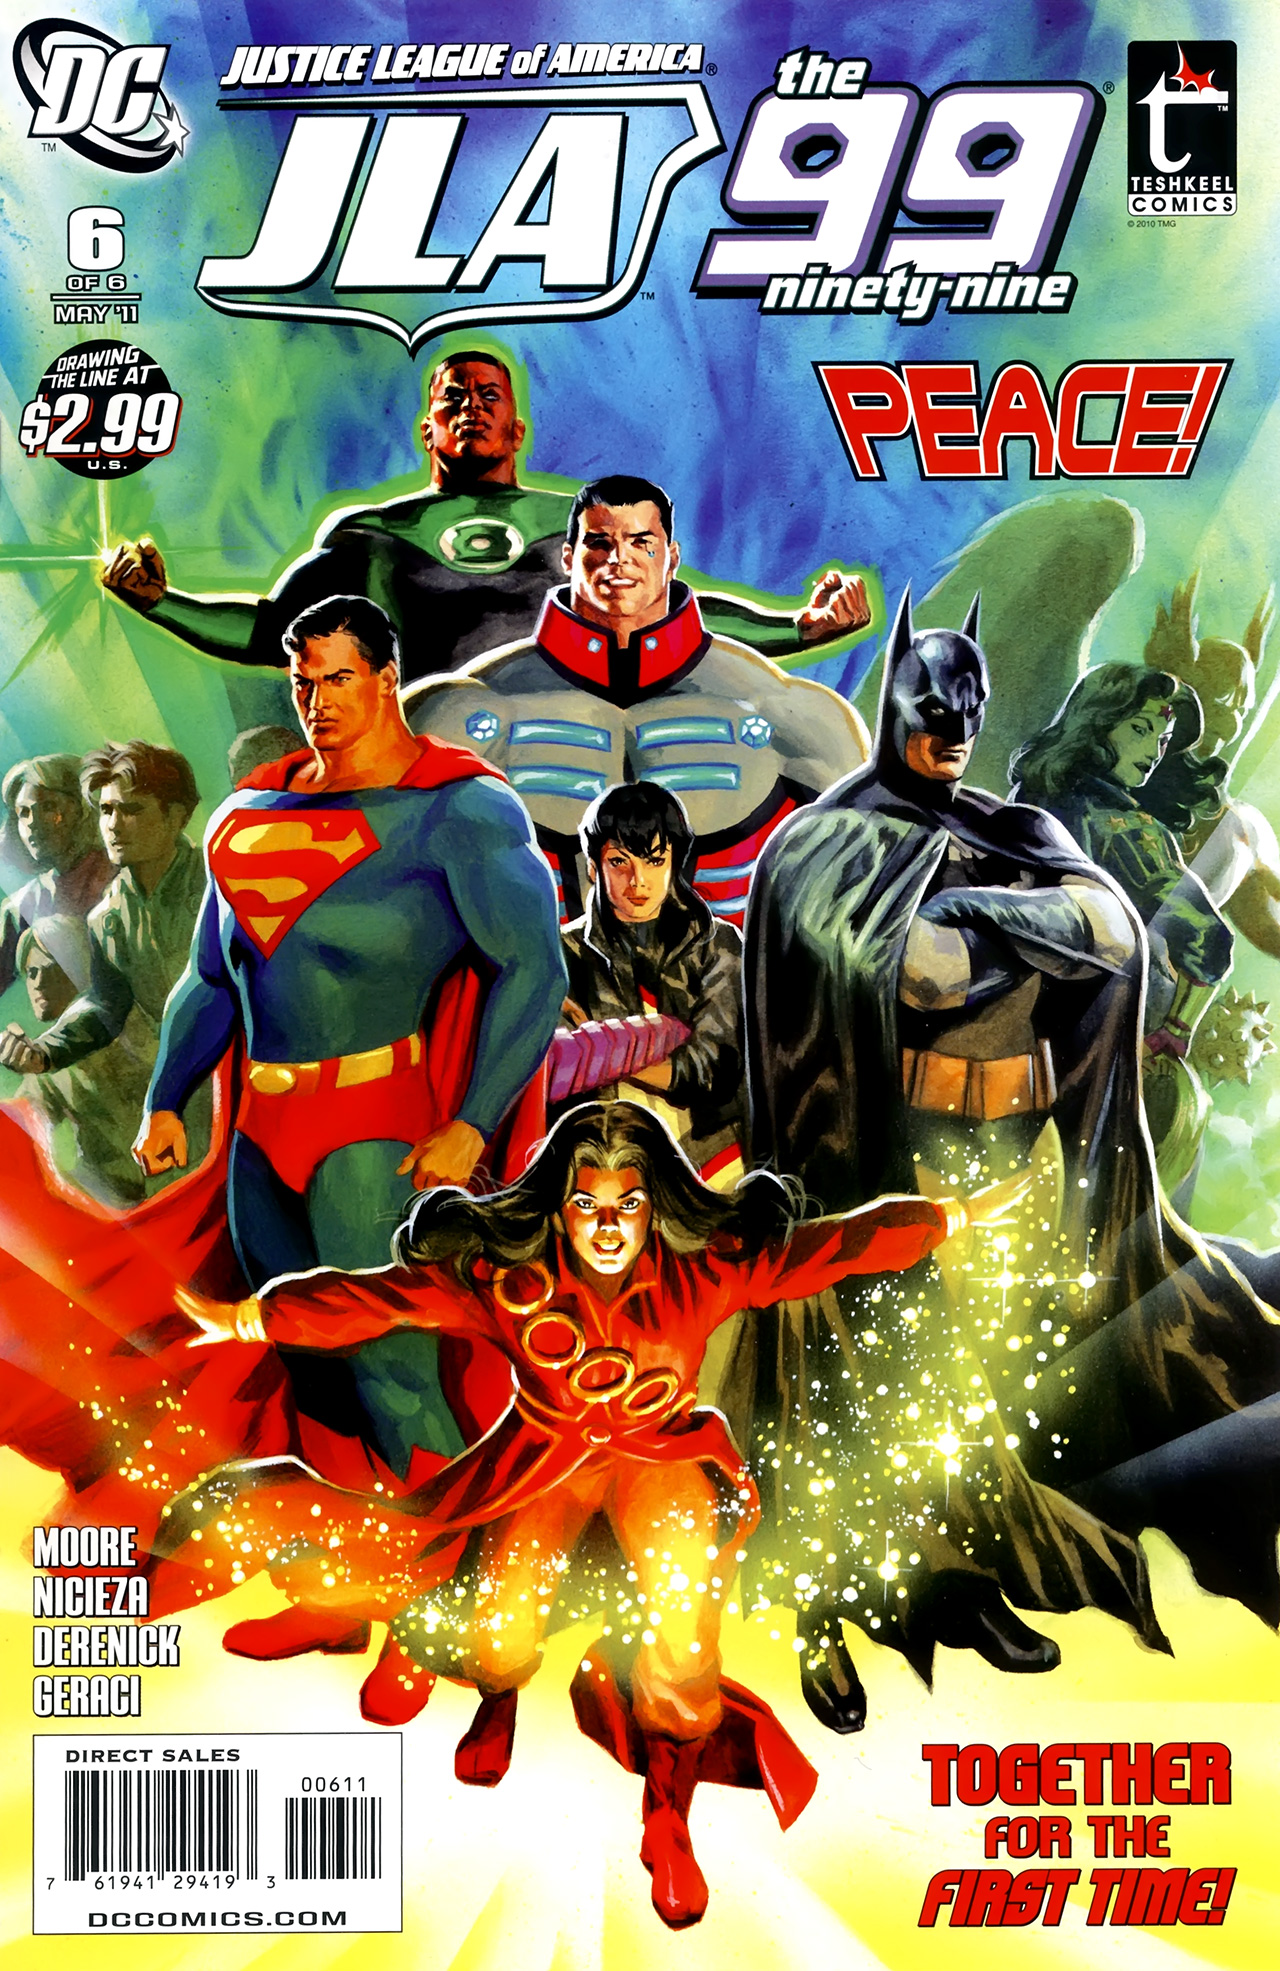 Read online Justice League of America/The 99 comic -  Issue #6 - 1